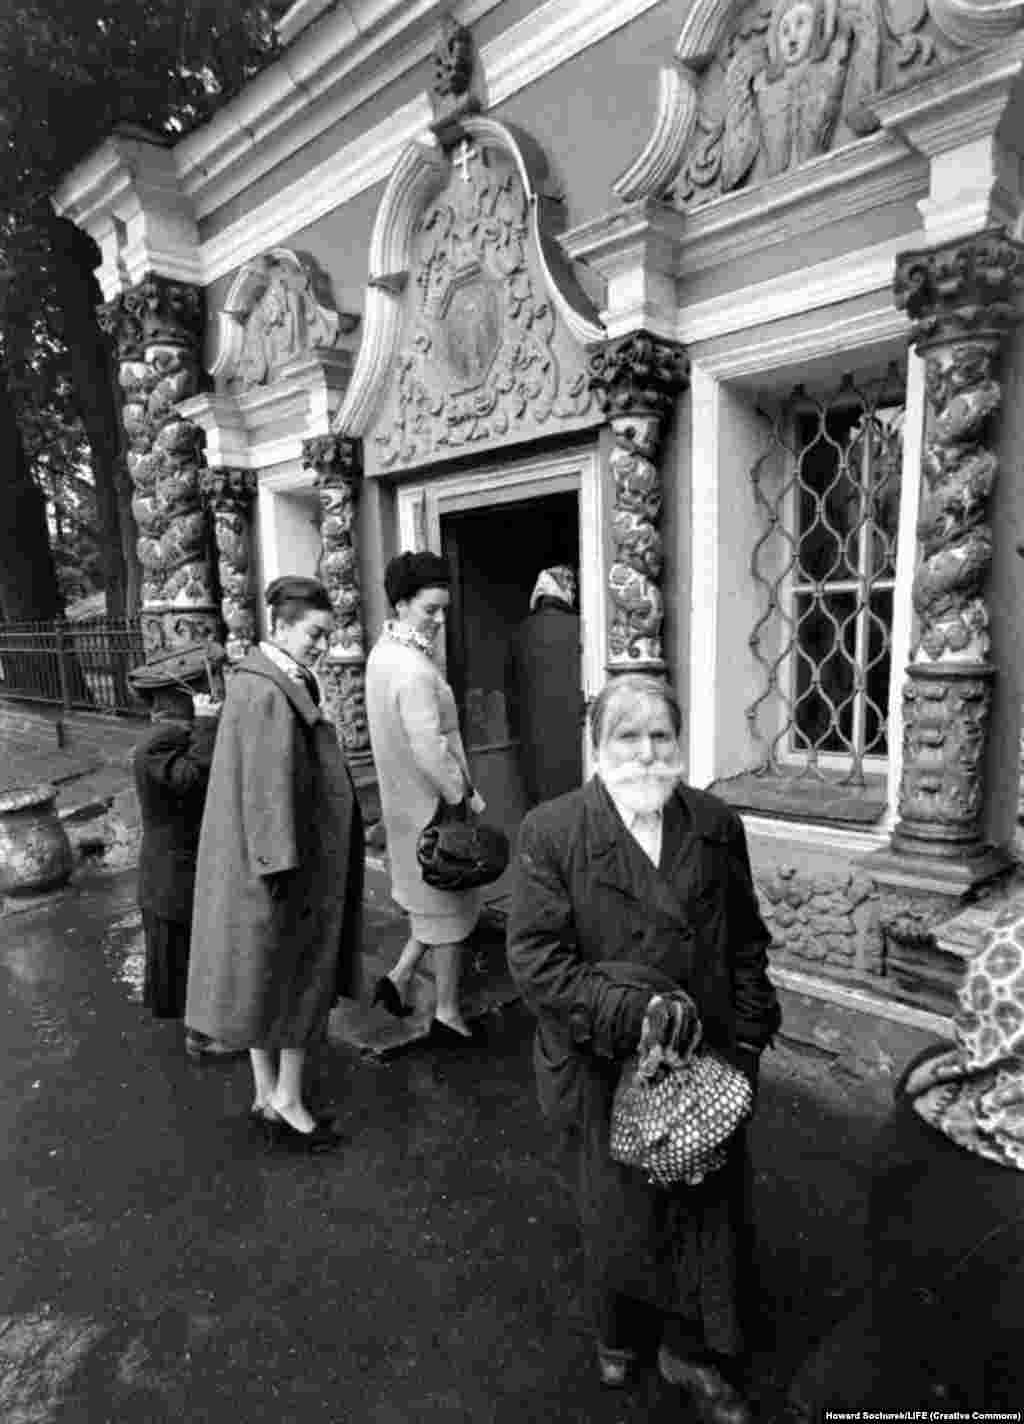 The foreign visitors check out a dapper Soviet gentleman as they head into a church on a rainy day.